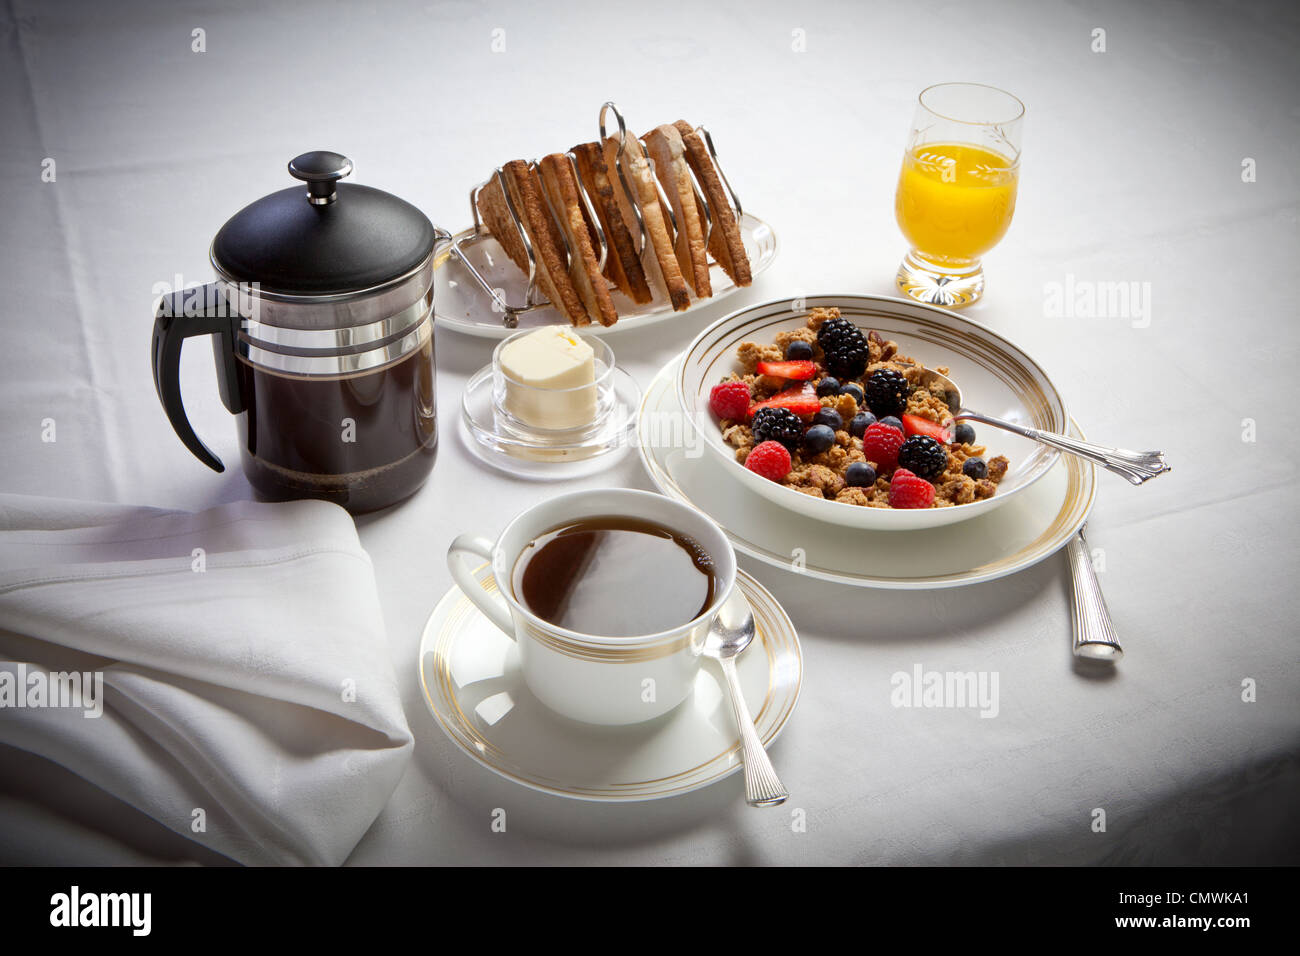 continental breakfast with coffee juice cereal and toast, laid out on a white linen tablecloth - Stock Image